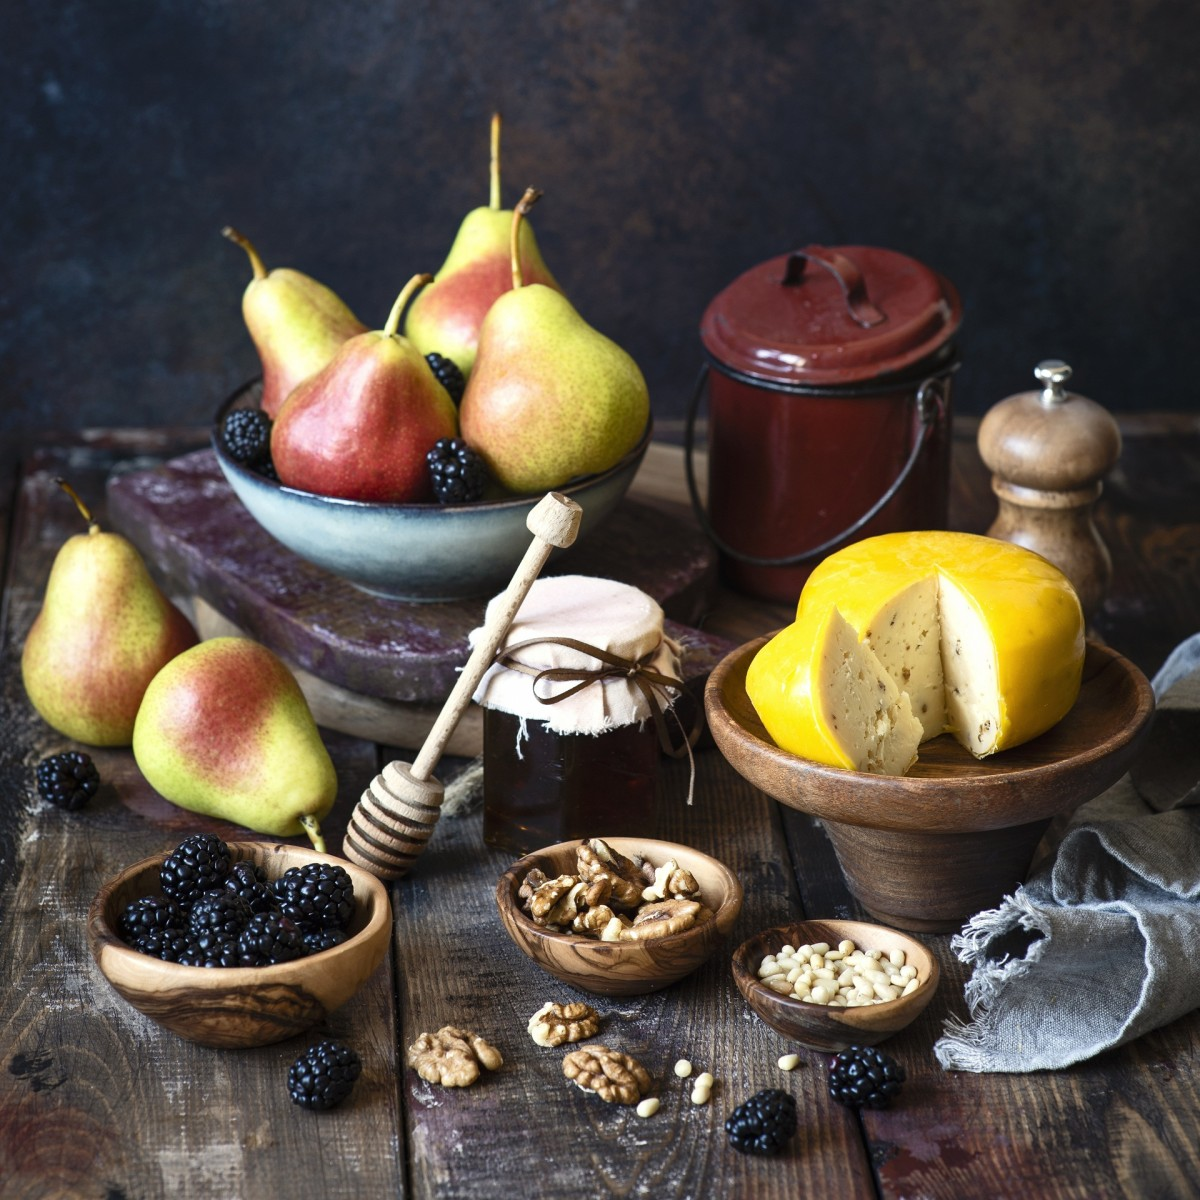 Jigsaw Puzzle Solve jigsaw puzzles online - Still life with cheese